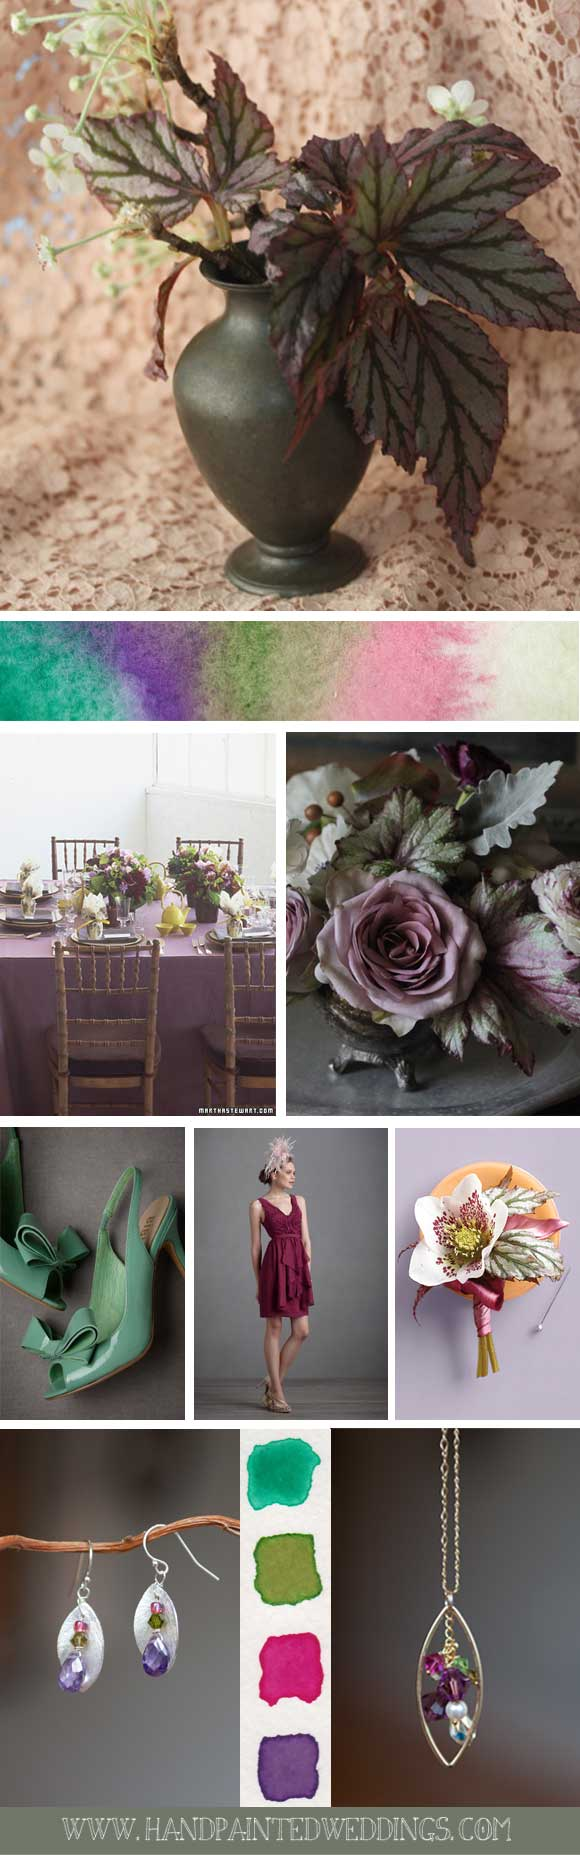 Hand-Painted Reception: Inspired by Colorful Leaves